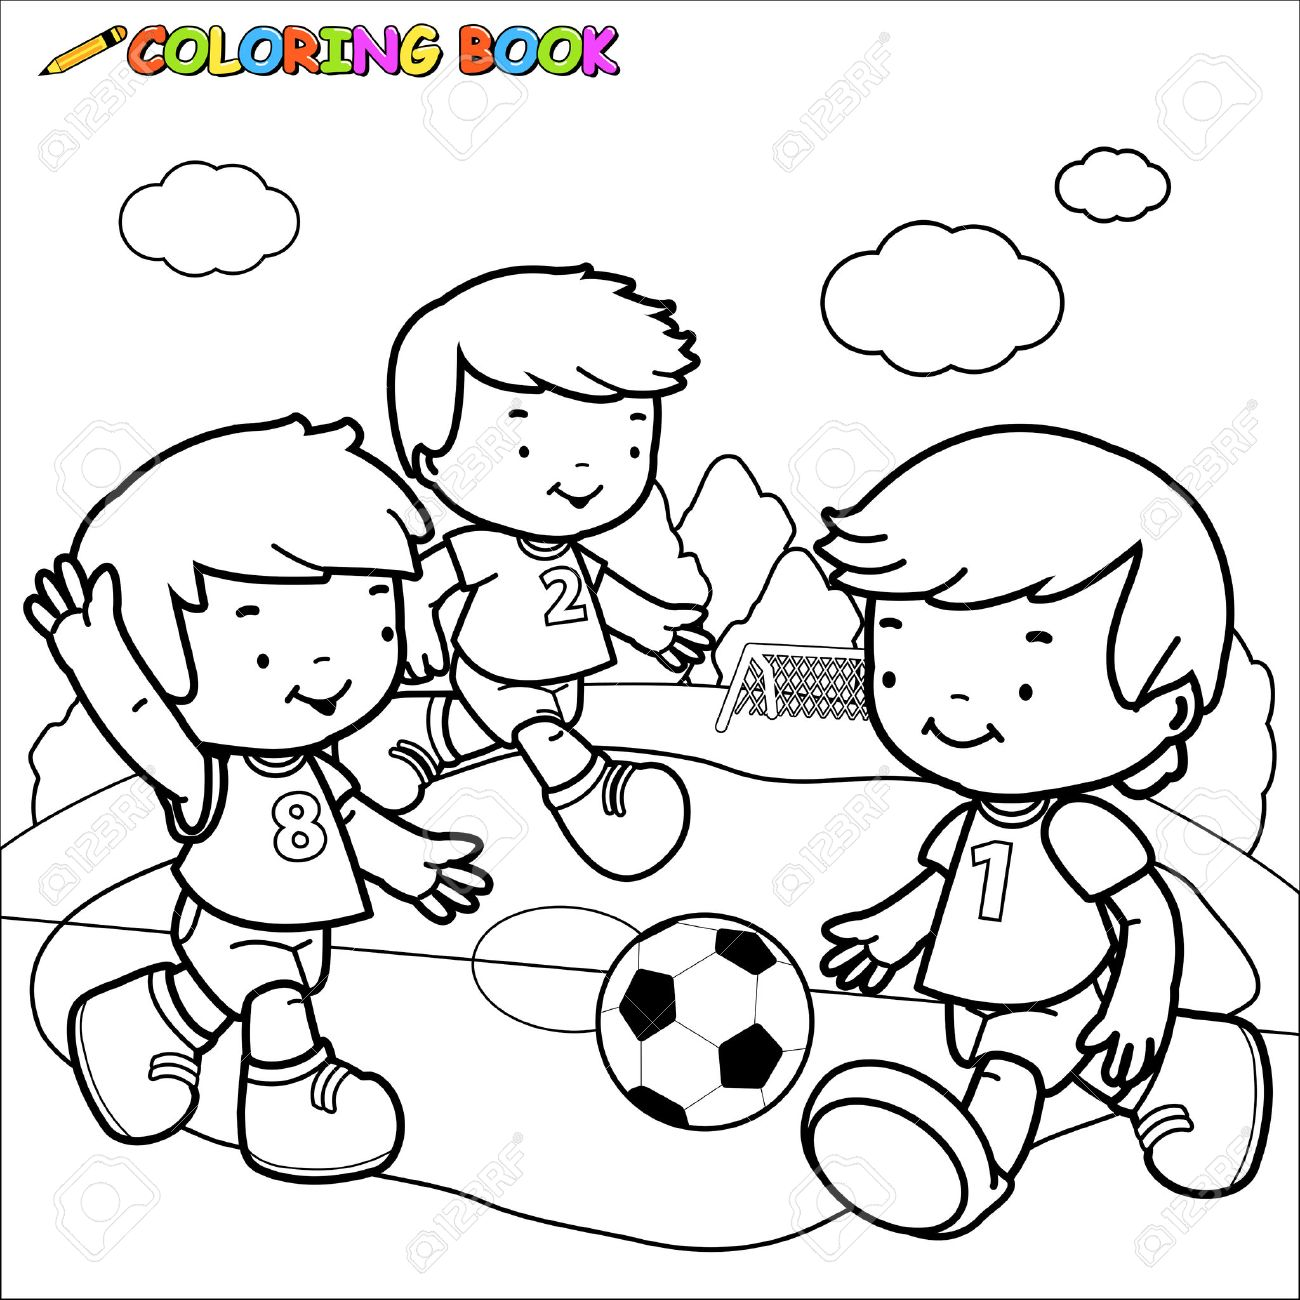 Black and white outline image of three little boys playing football - 49125812